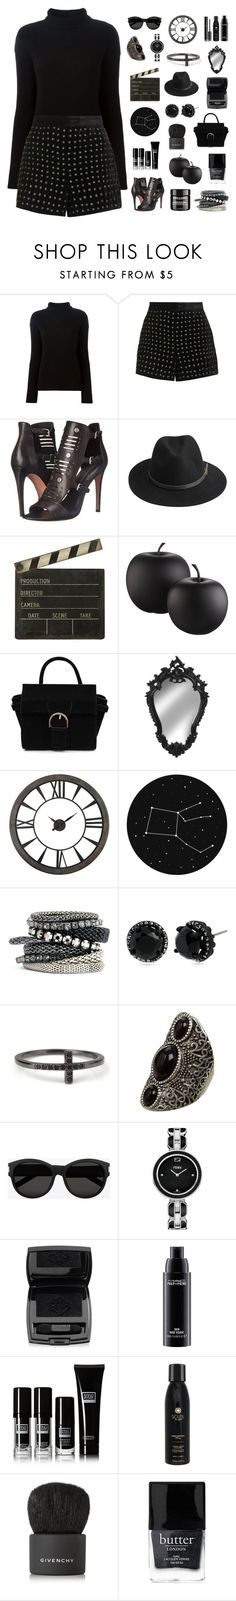 """All Black"" by boxthoughts ❤ liked on Polyvore featuring Helmut Lang, Topshop, Rebecca Minkoff, BeckSöndergaard, Ballard Designs, CB2, H&M, Betsey Johnson, Yves Saint Laurent and Fendi"